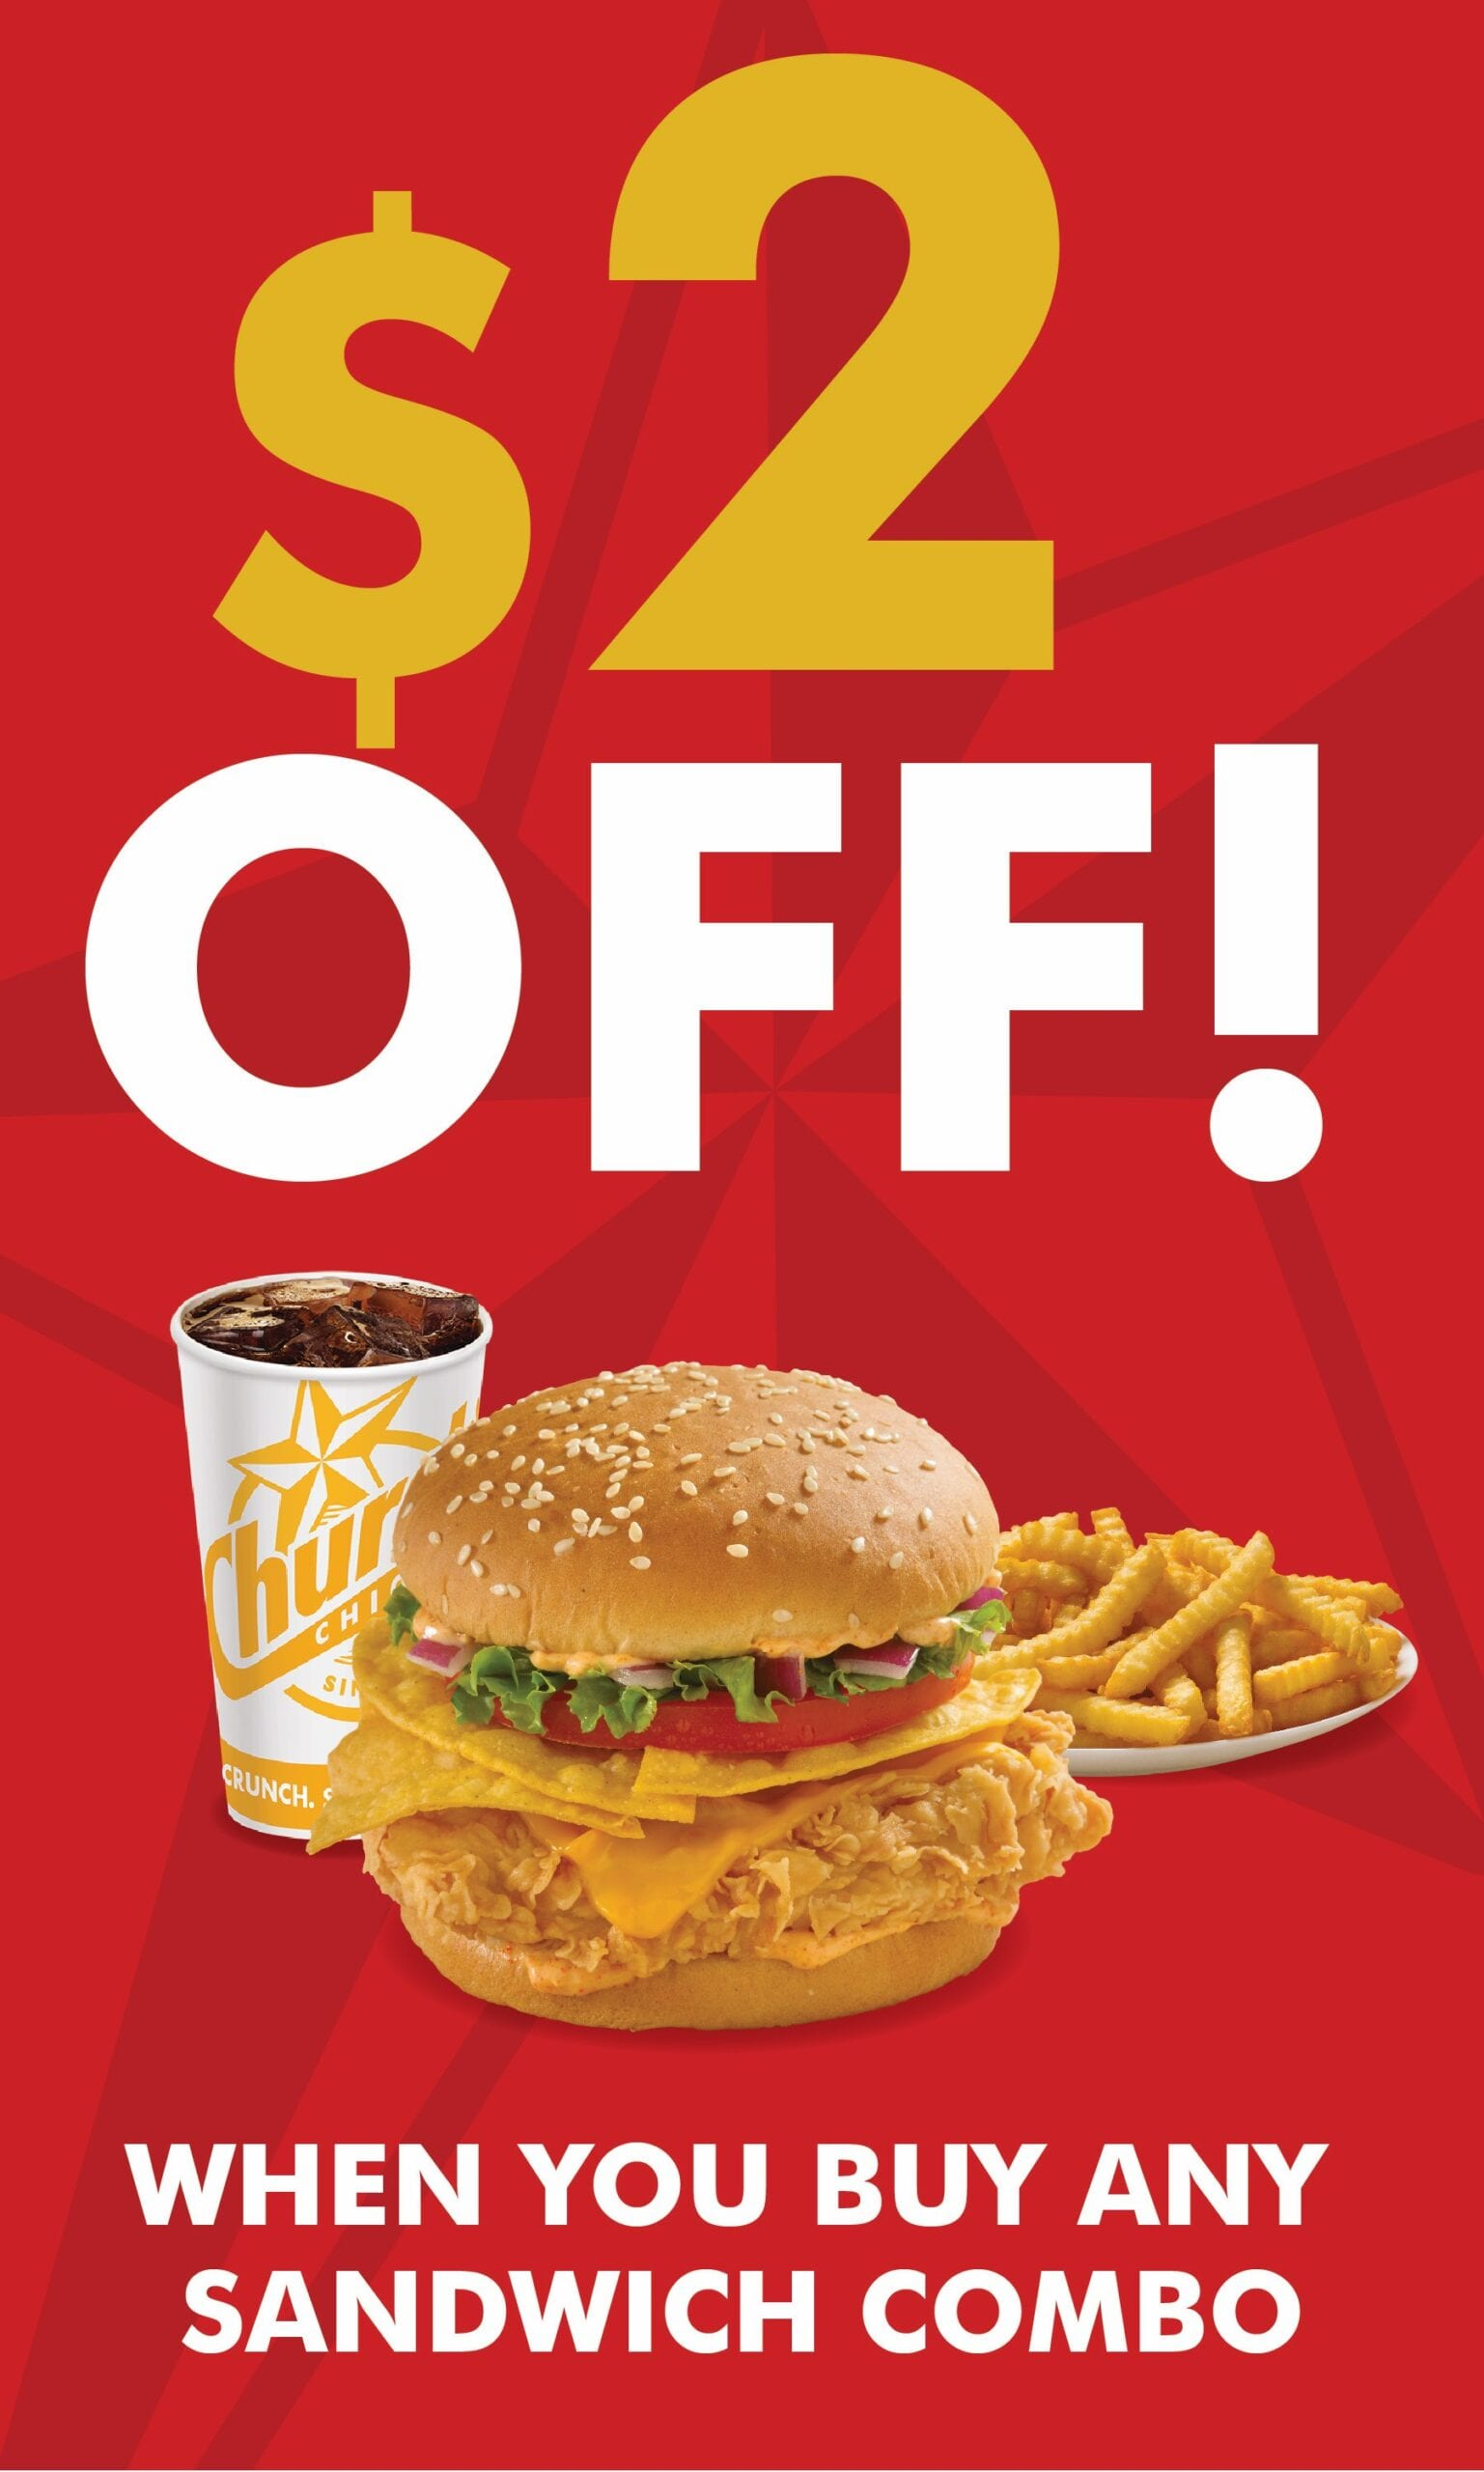 Church's Chicken British Columbia Coupons